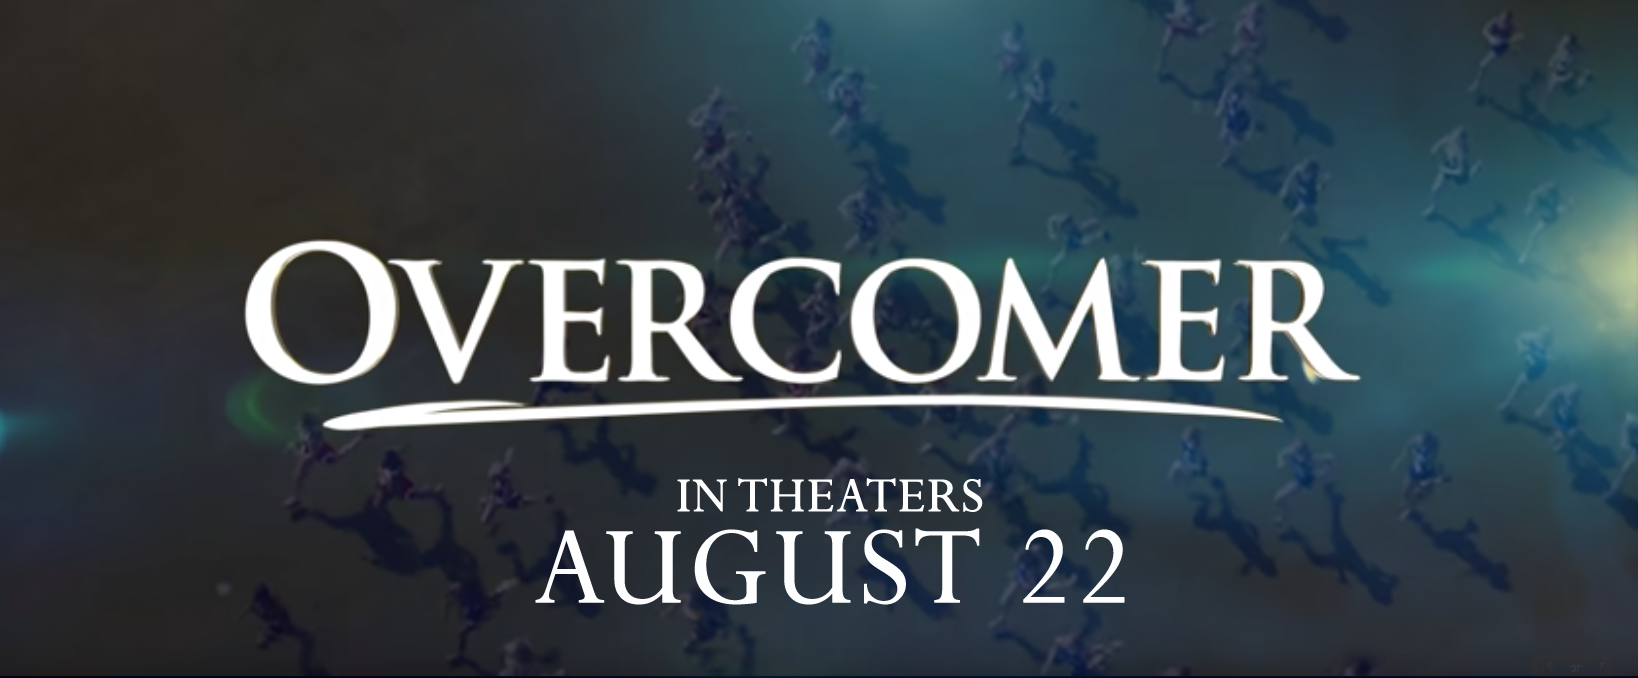 Overcomer title and release date